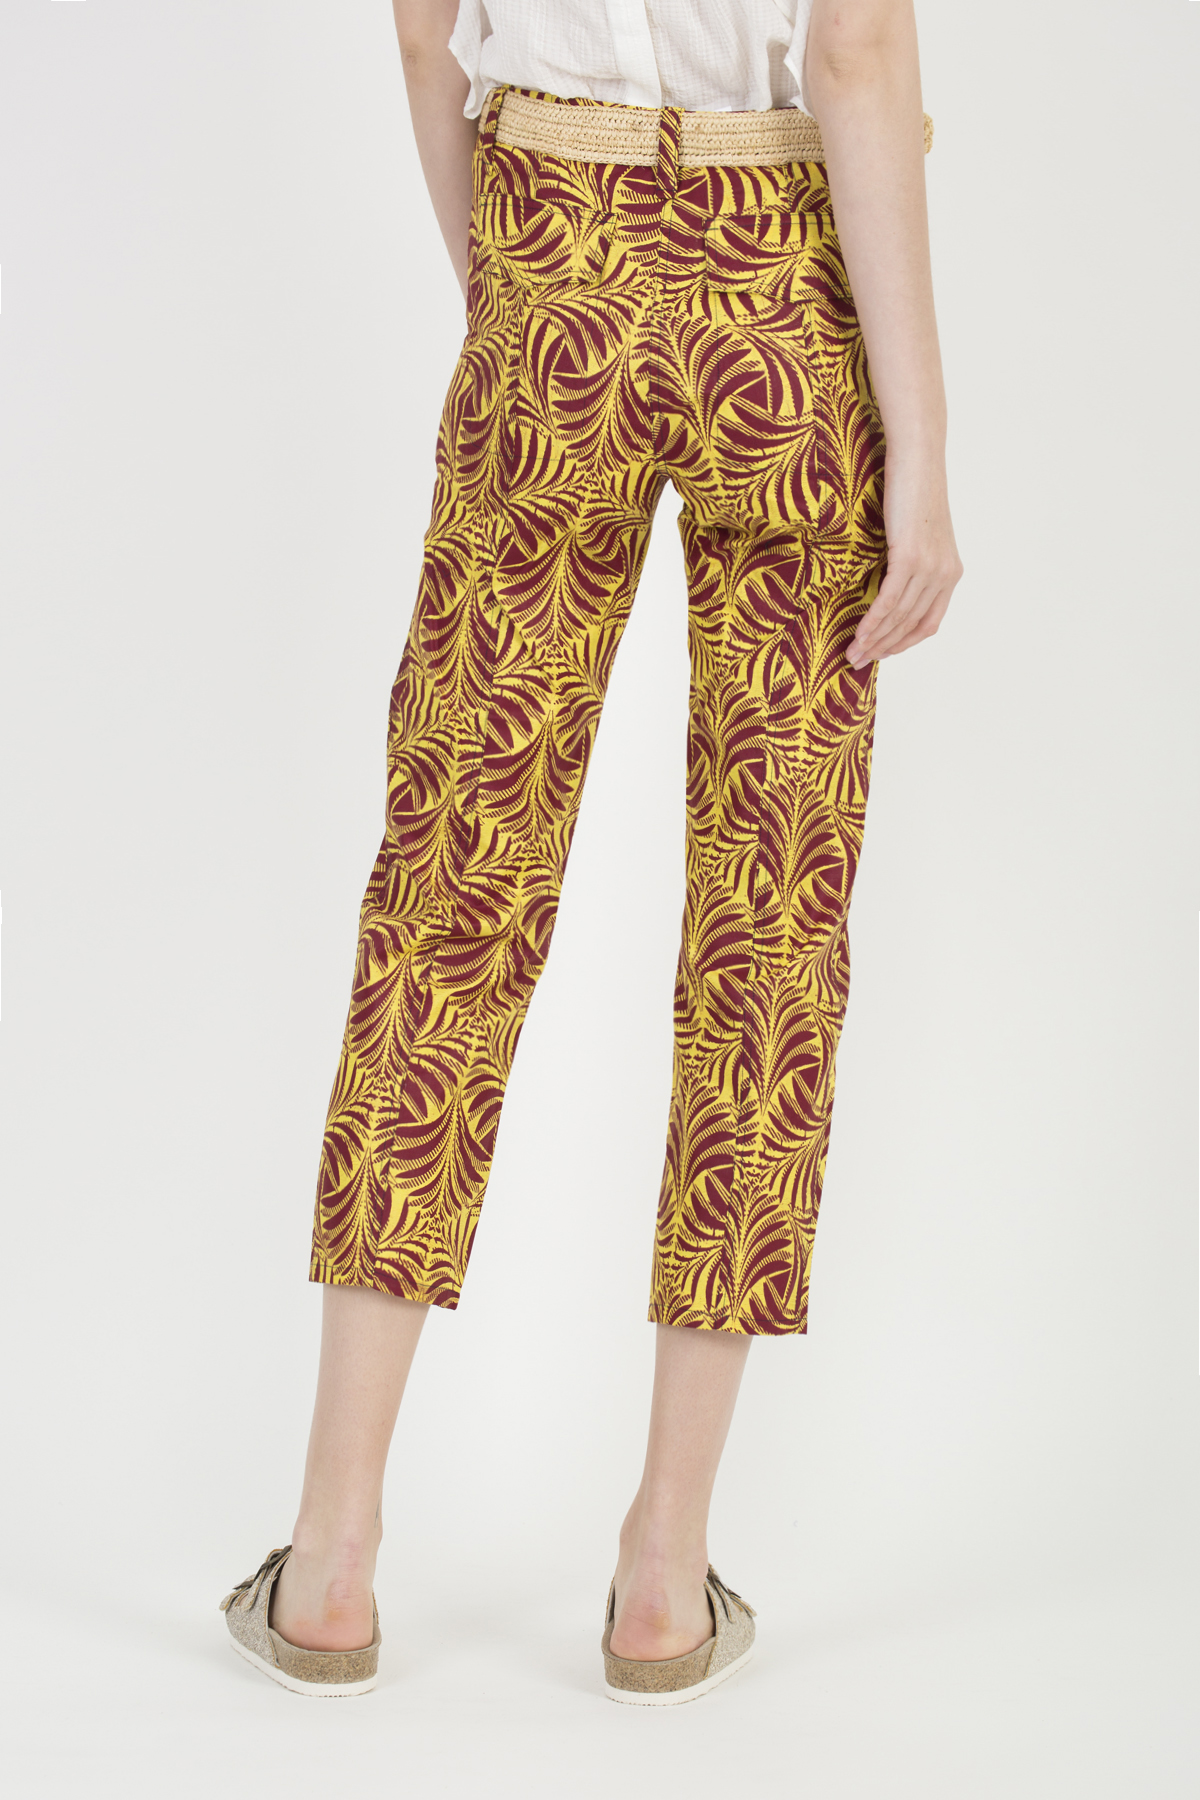 imale-milly-safran-trousers-african-print-matchboxathens